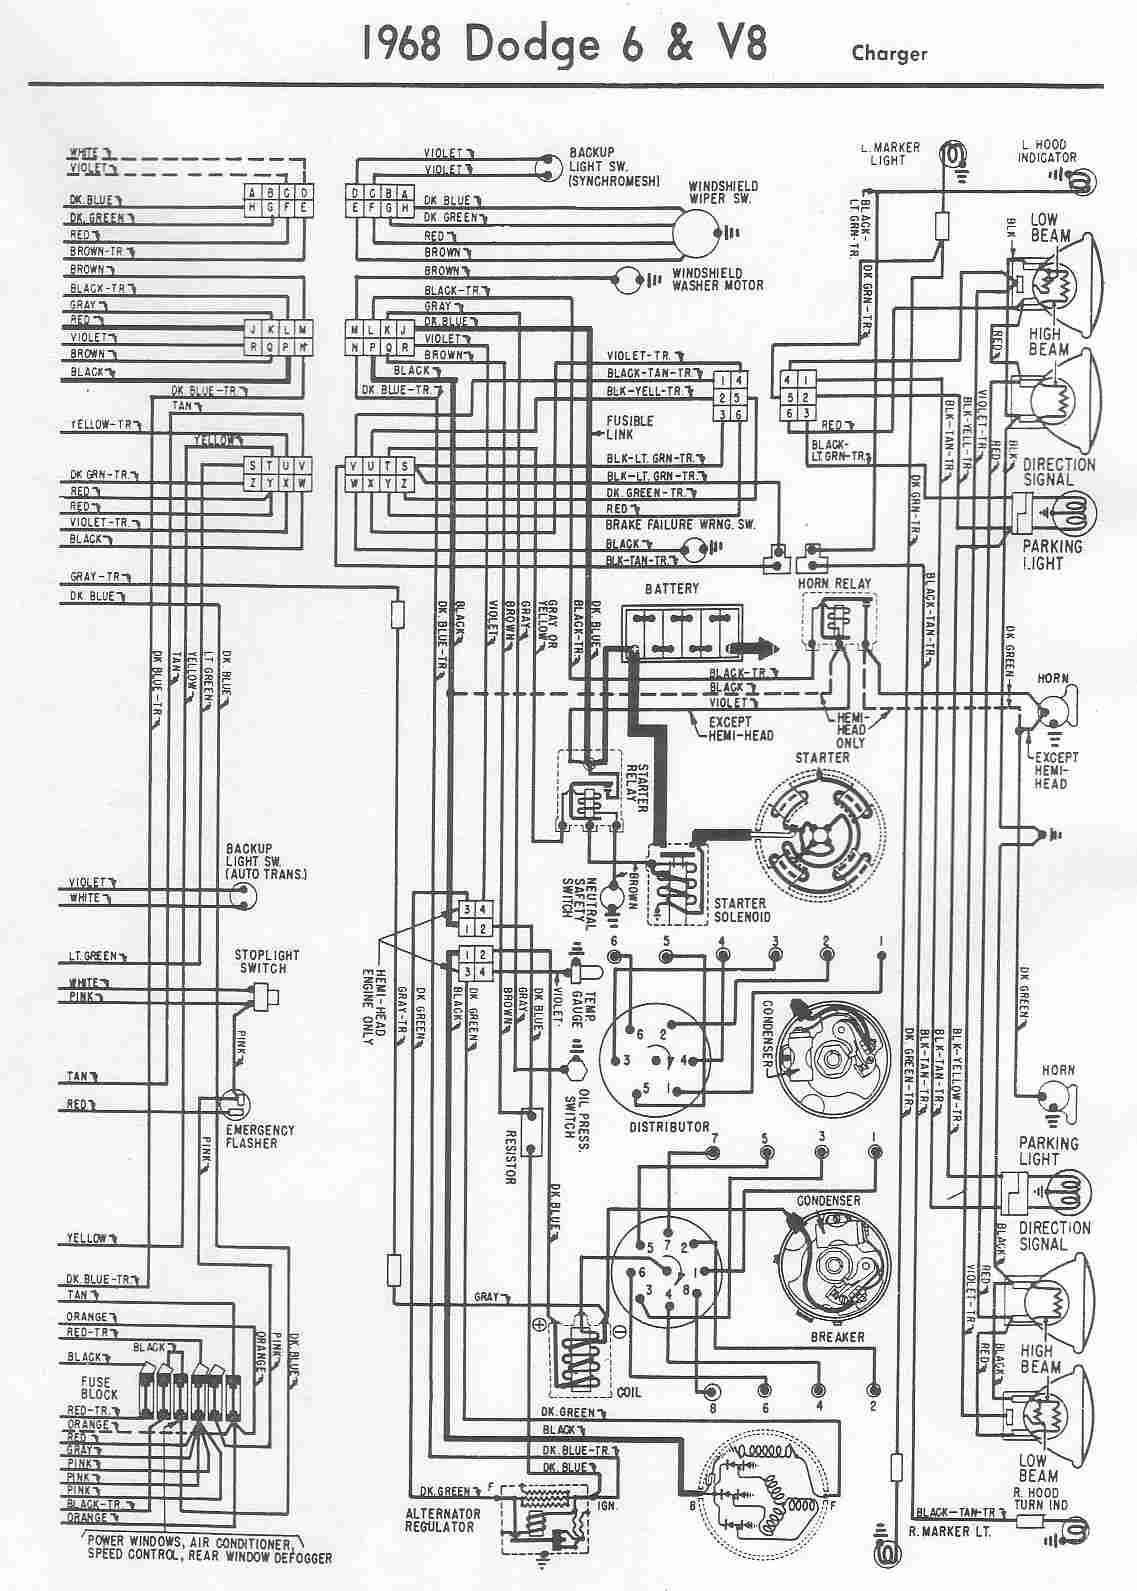 Horn Wiring Diagram 1968 Plymouth Data Diagrams Cadillac Dash 68 Free Picture Schematic Smart Rh Emgsolutions Co Class A Rv